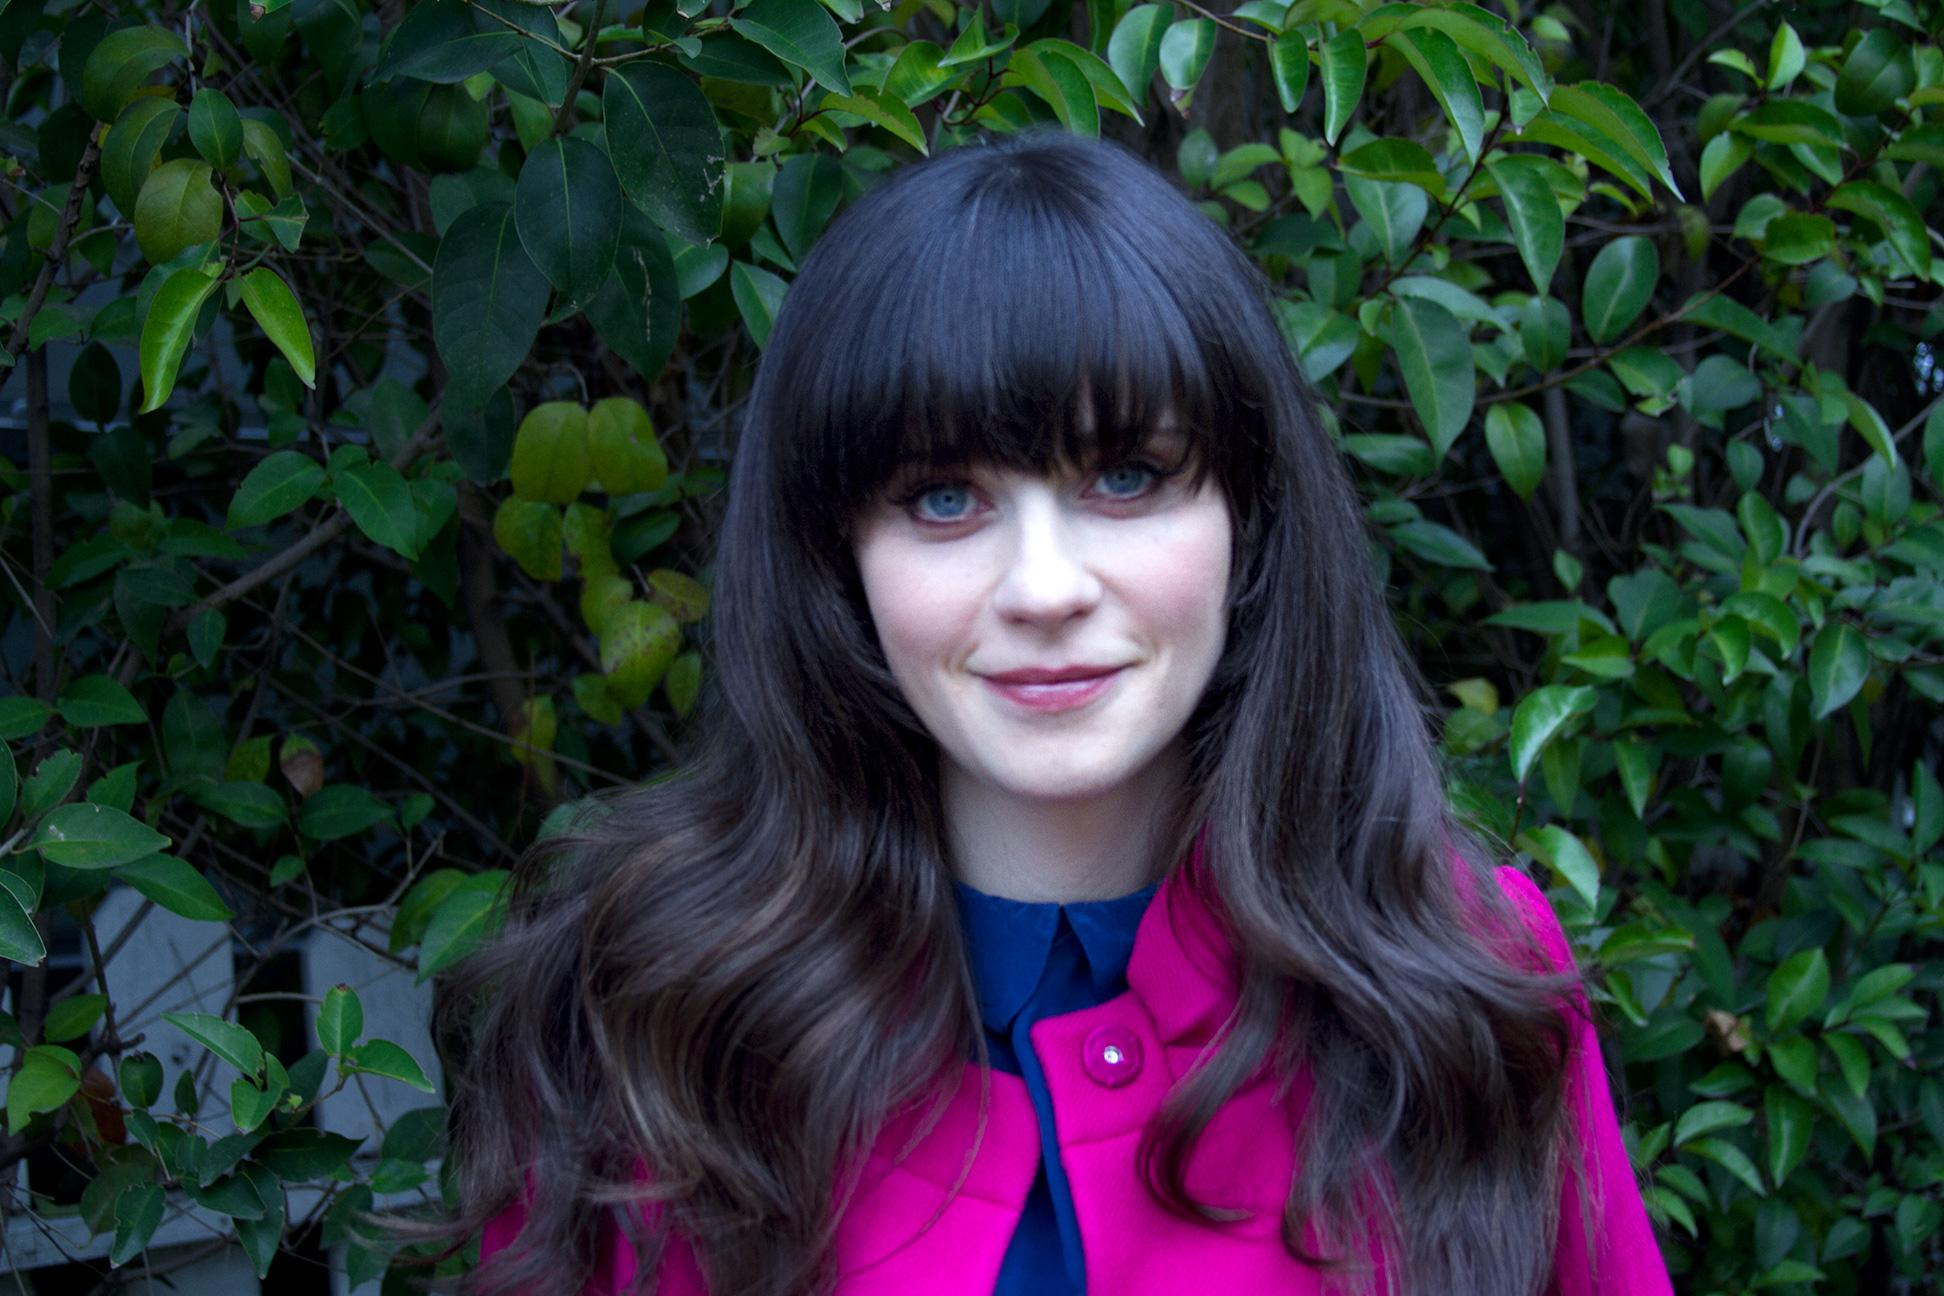 Zooey Deschanel Wallpapers HD Backgrounds, Images, Pics, Photos Free ...